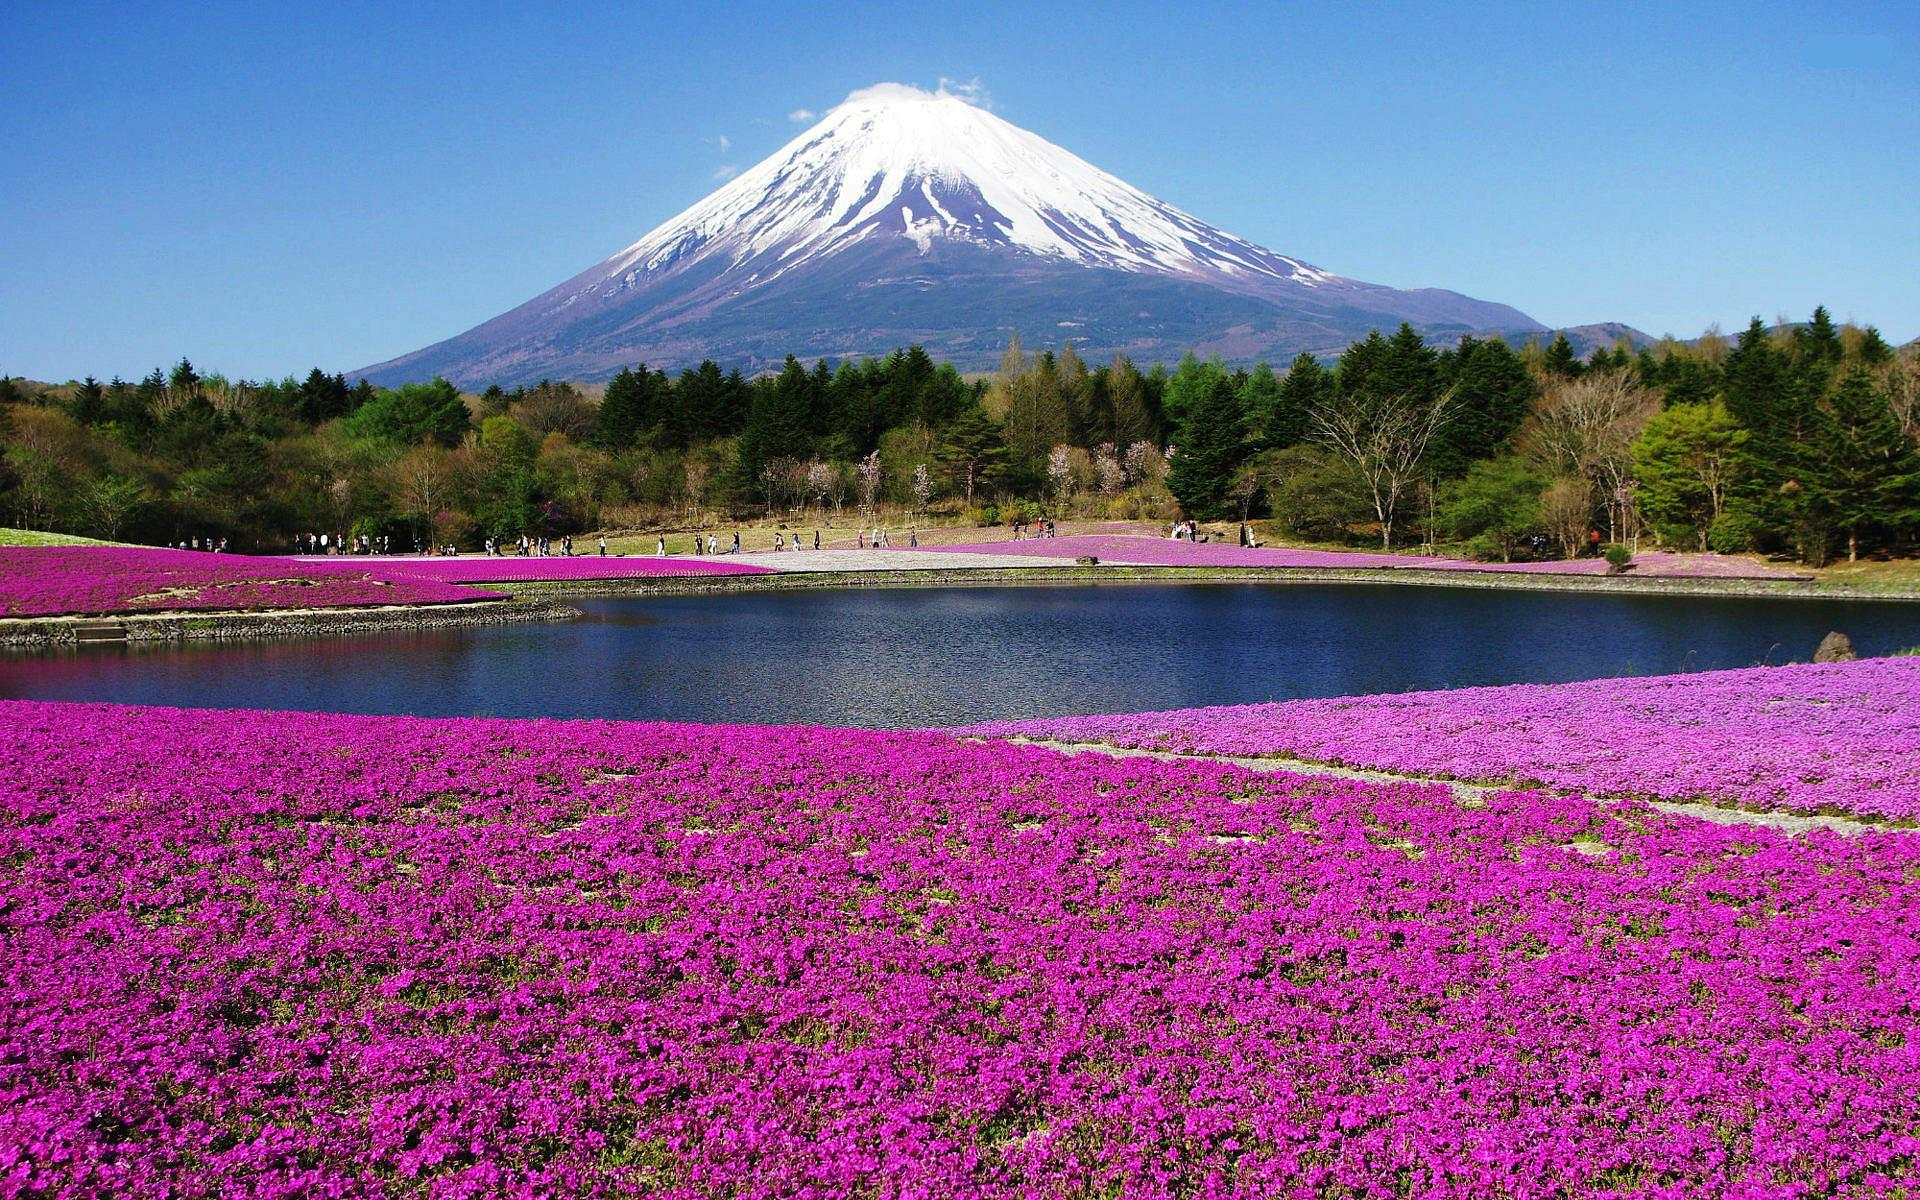 Mount fuji japan   138297   High Quality and Resolution Wallpapers 1920x1200